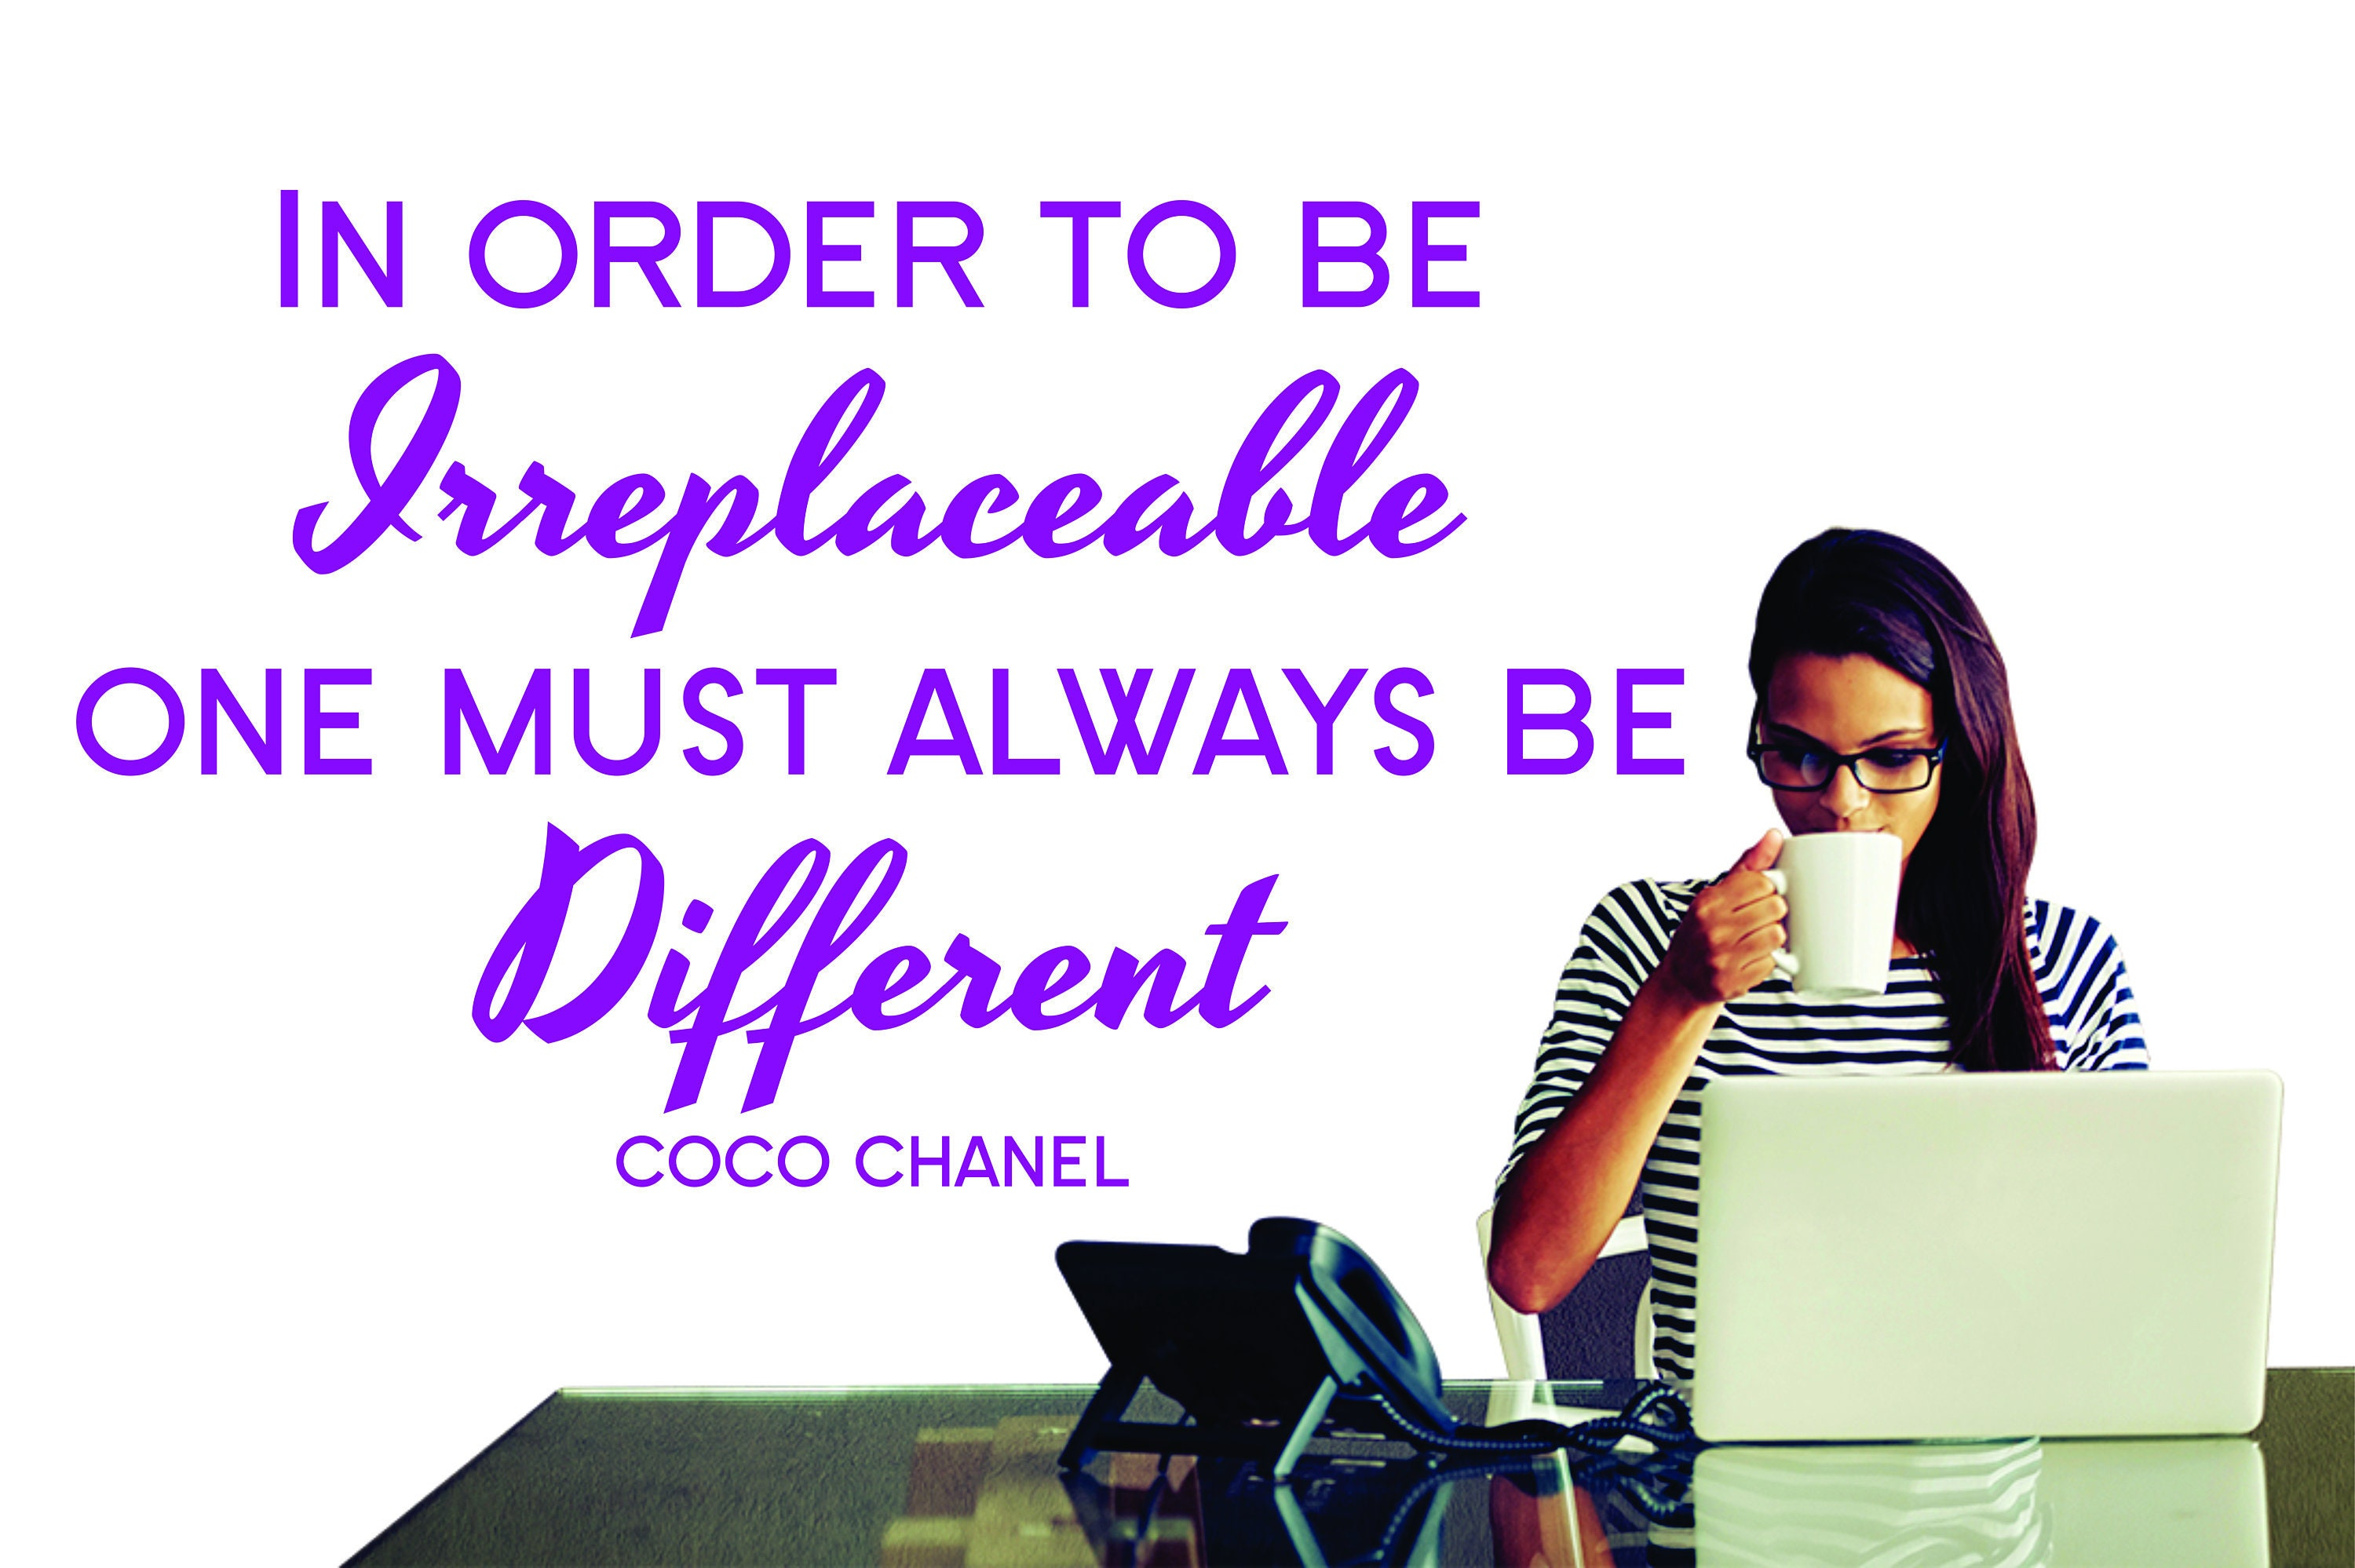 Coco chanel quote in order to be irreplaceable vinyl wall sticker decal large